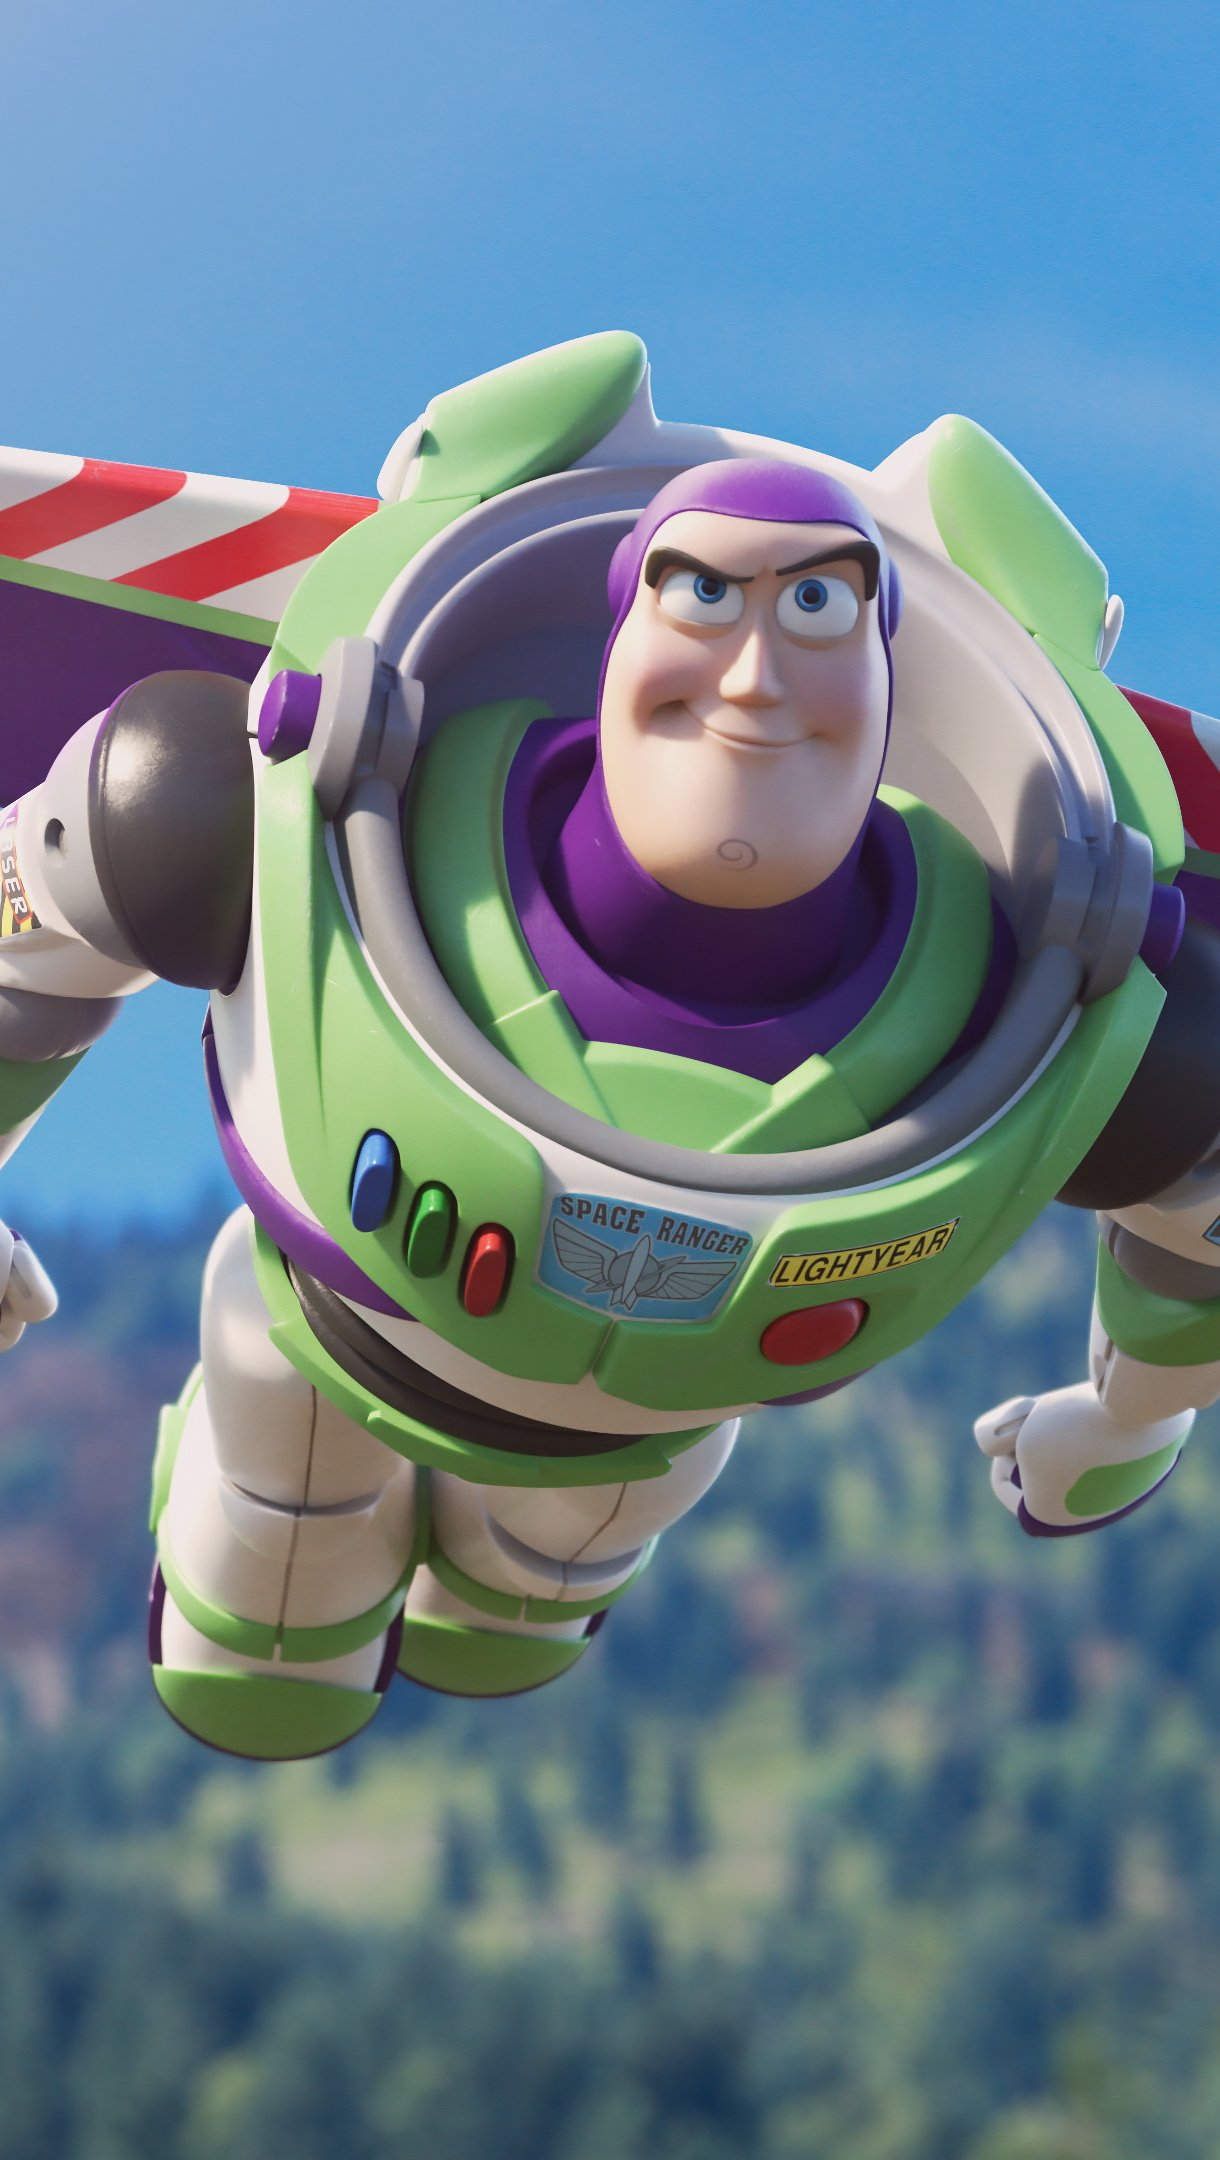 Wallpaper Buzz Lightyear flying Toy Story 4 Vertical